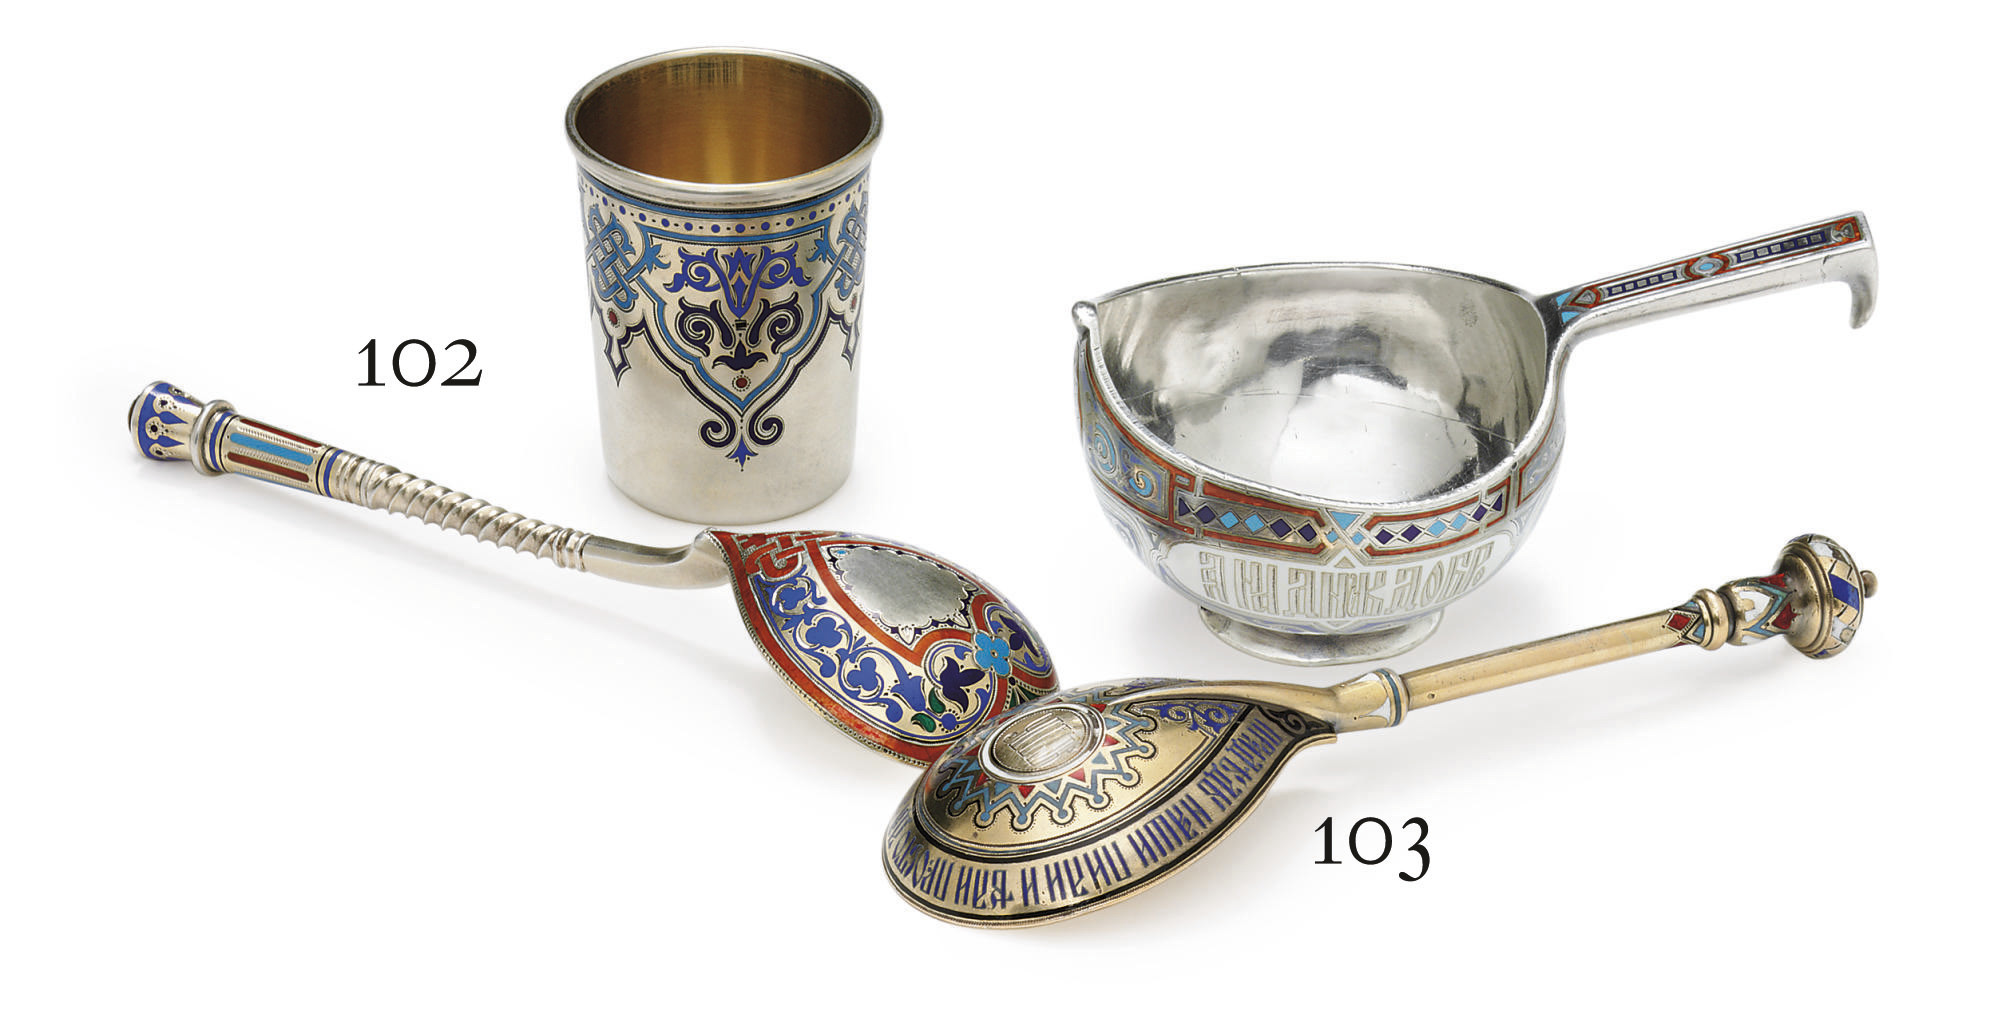 A Silver-Gilt and Champlevé Enamel Spoon